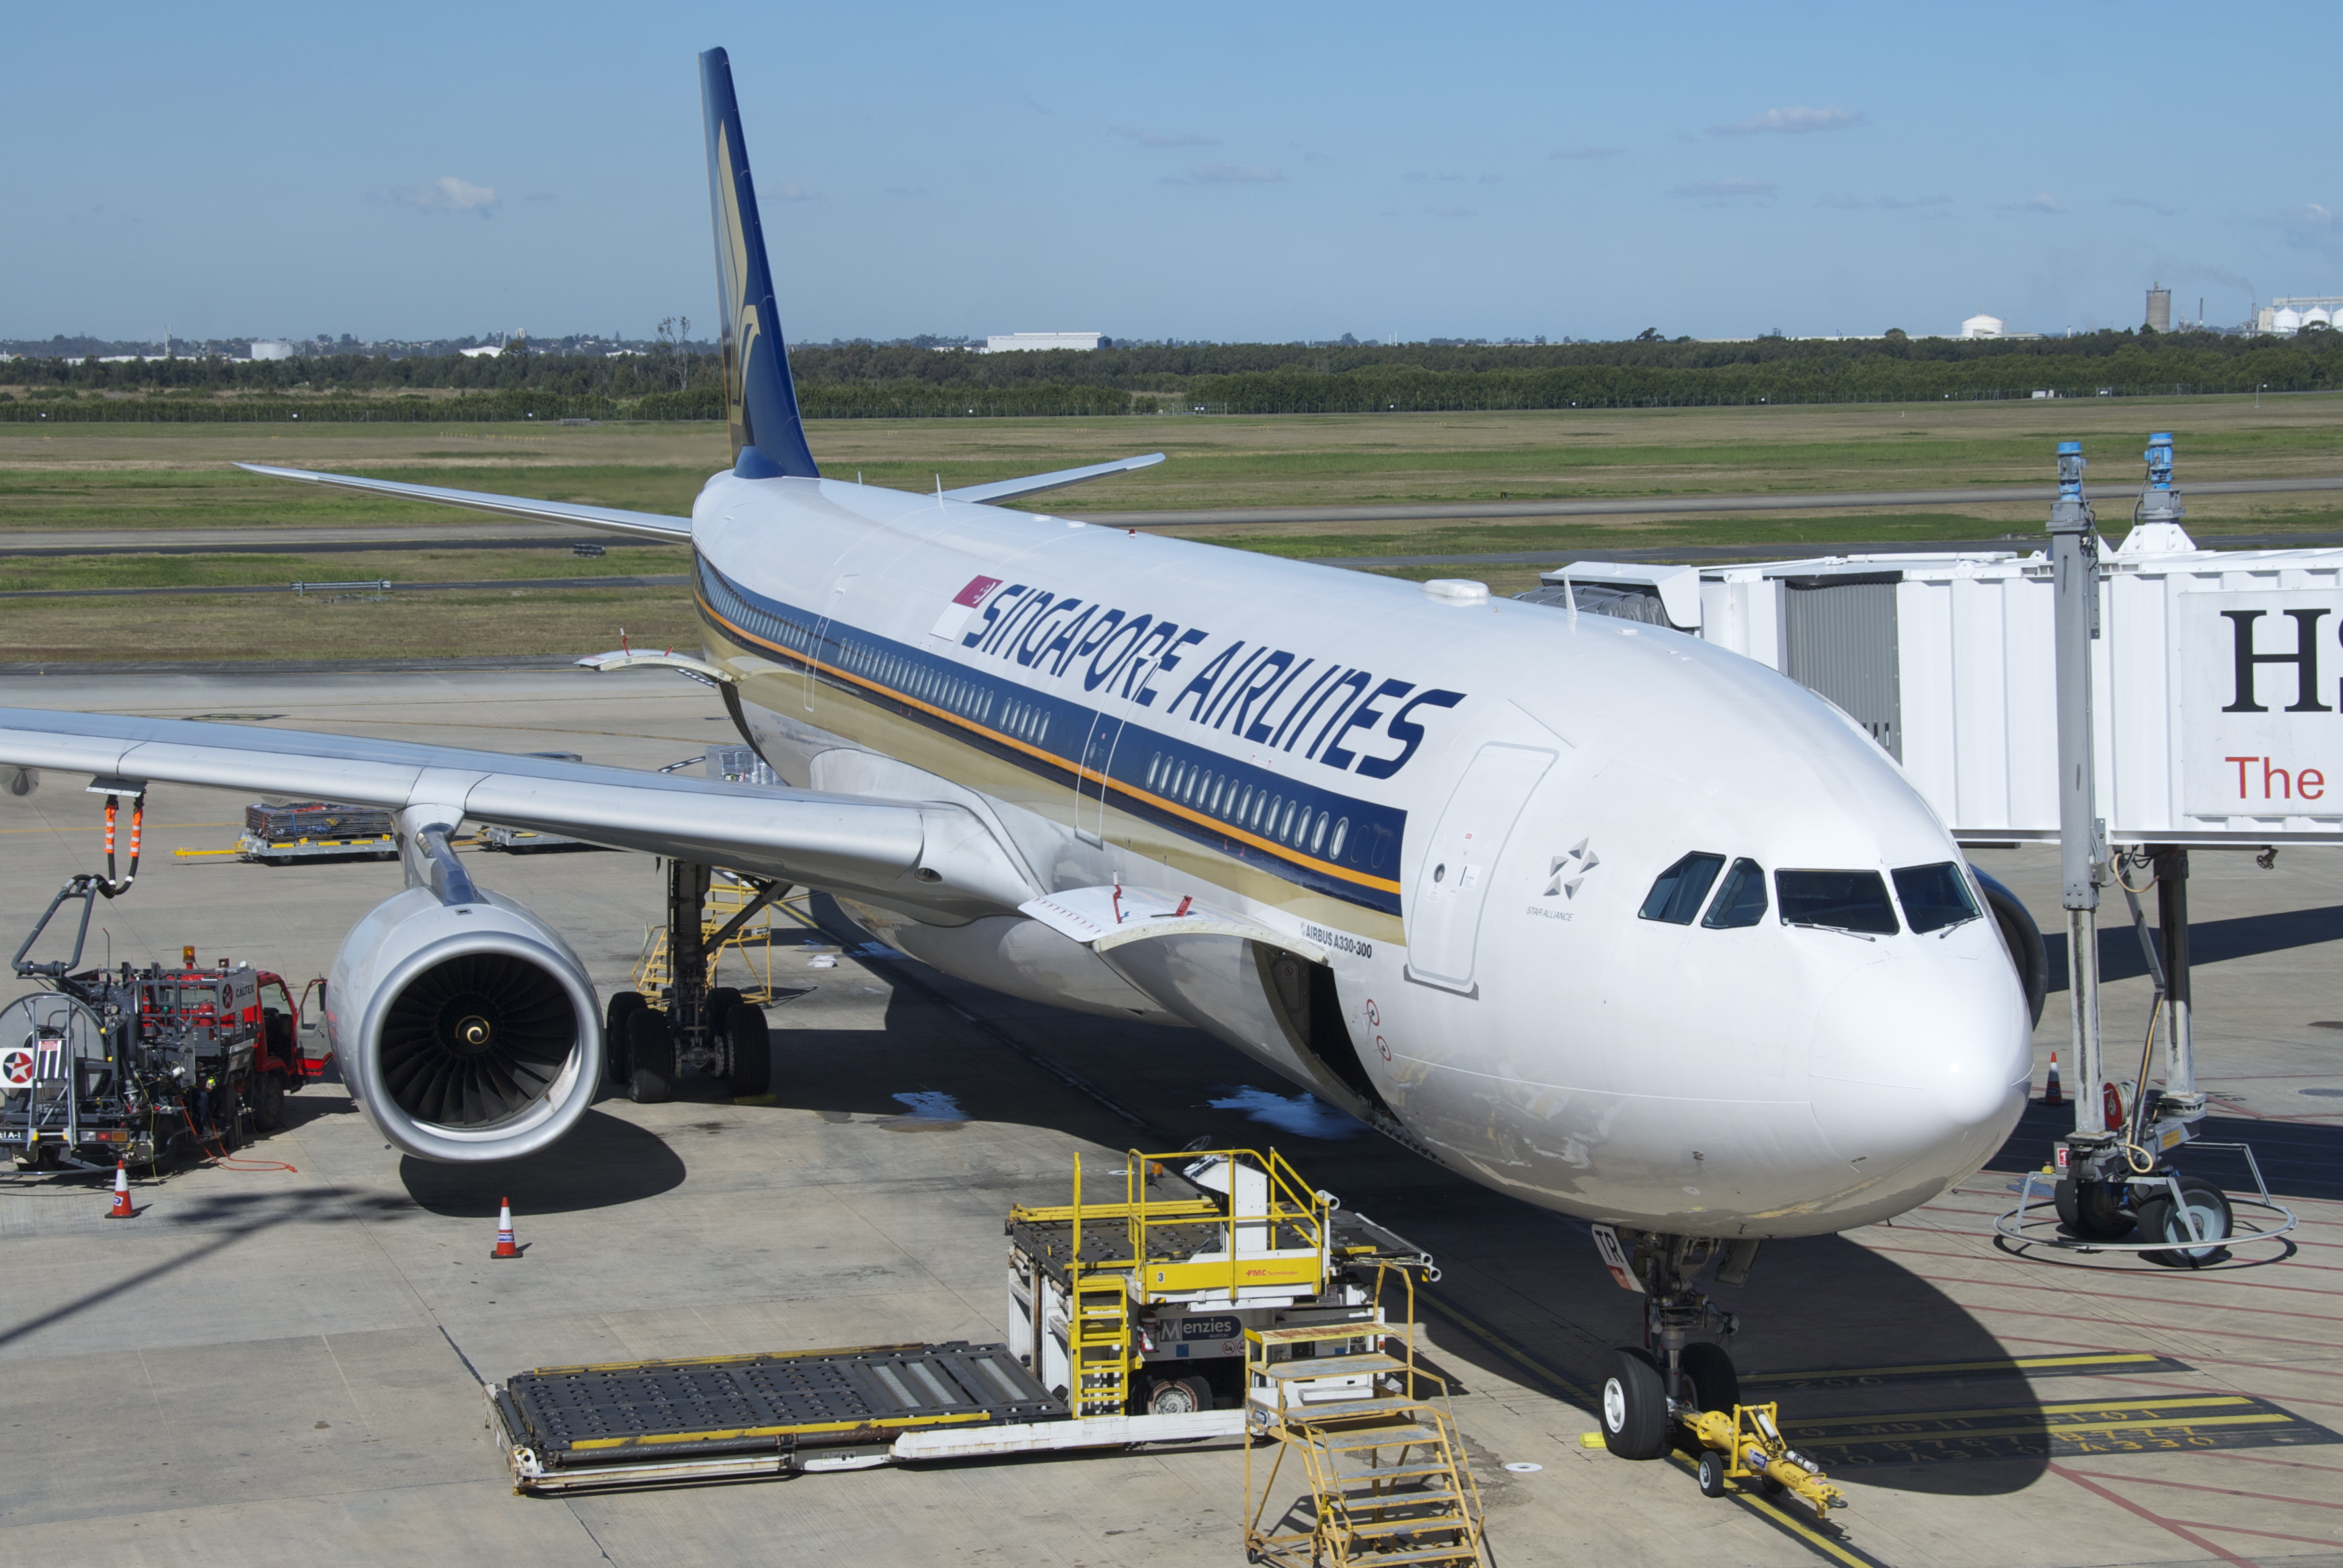 File:Singapore Airlines Airbus A330-300; 9V-STR@BNE;01.08 ...